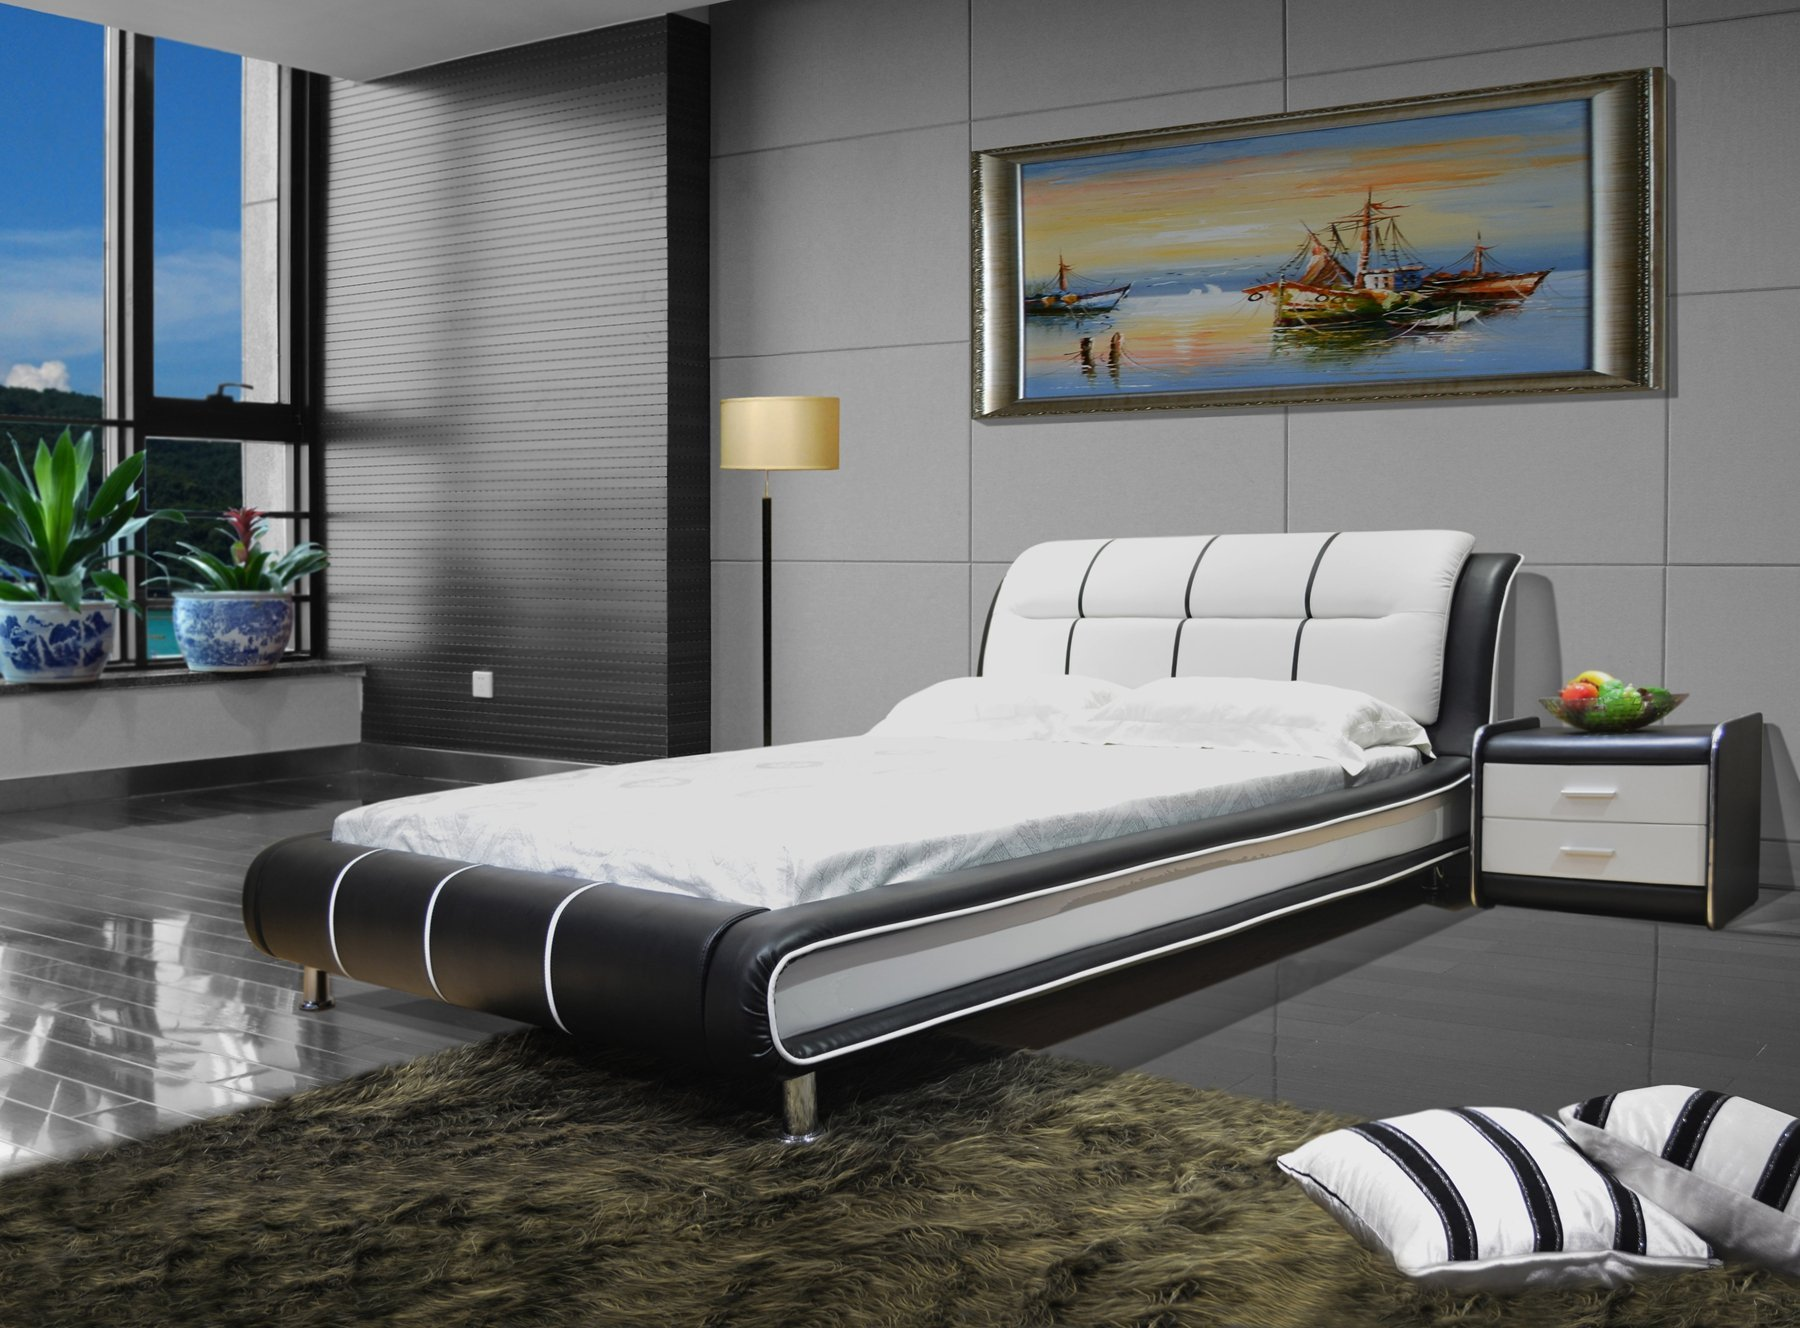 Greatime B1190 Modern Vinyl Platform Bed (Eastern King, Black&White) by GREATIME